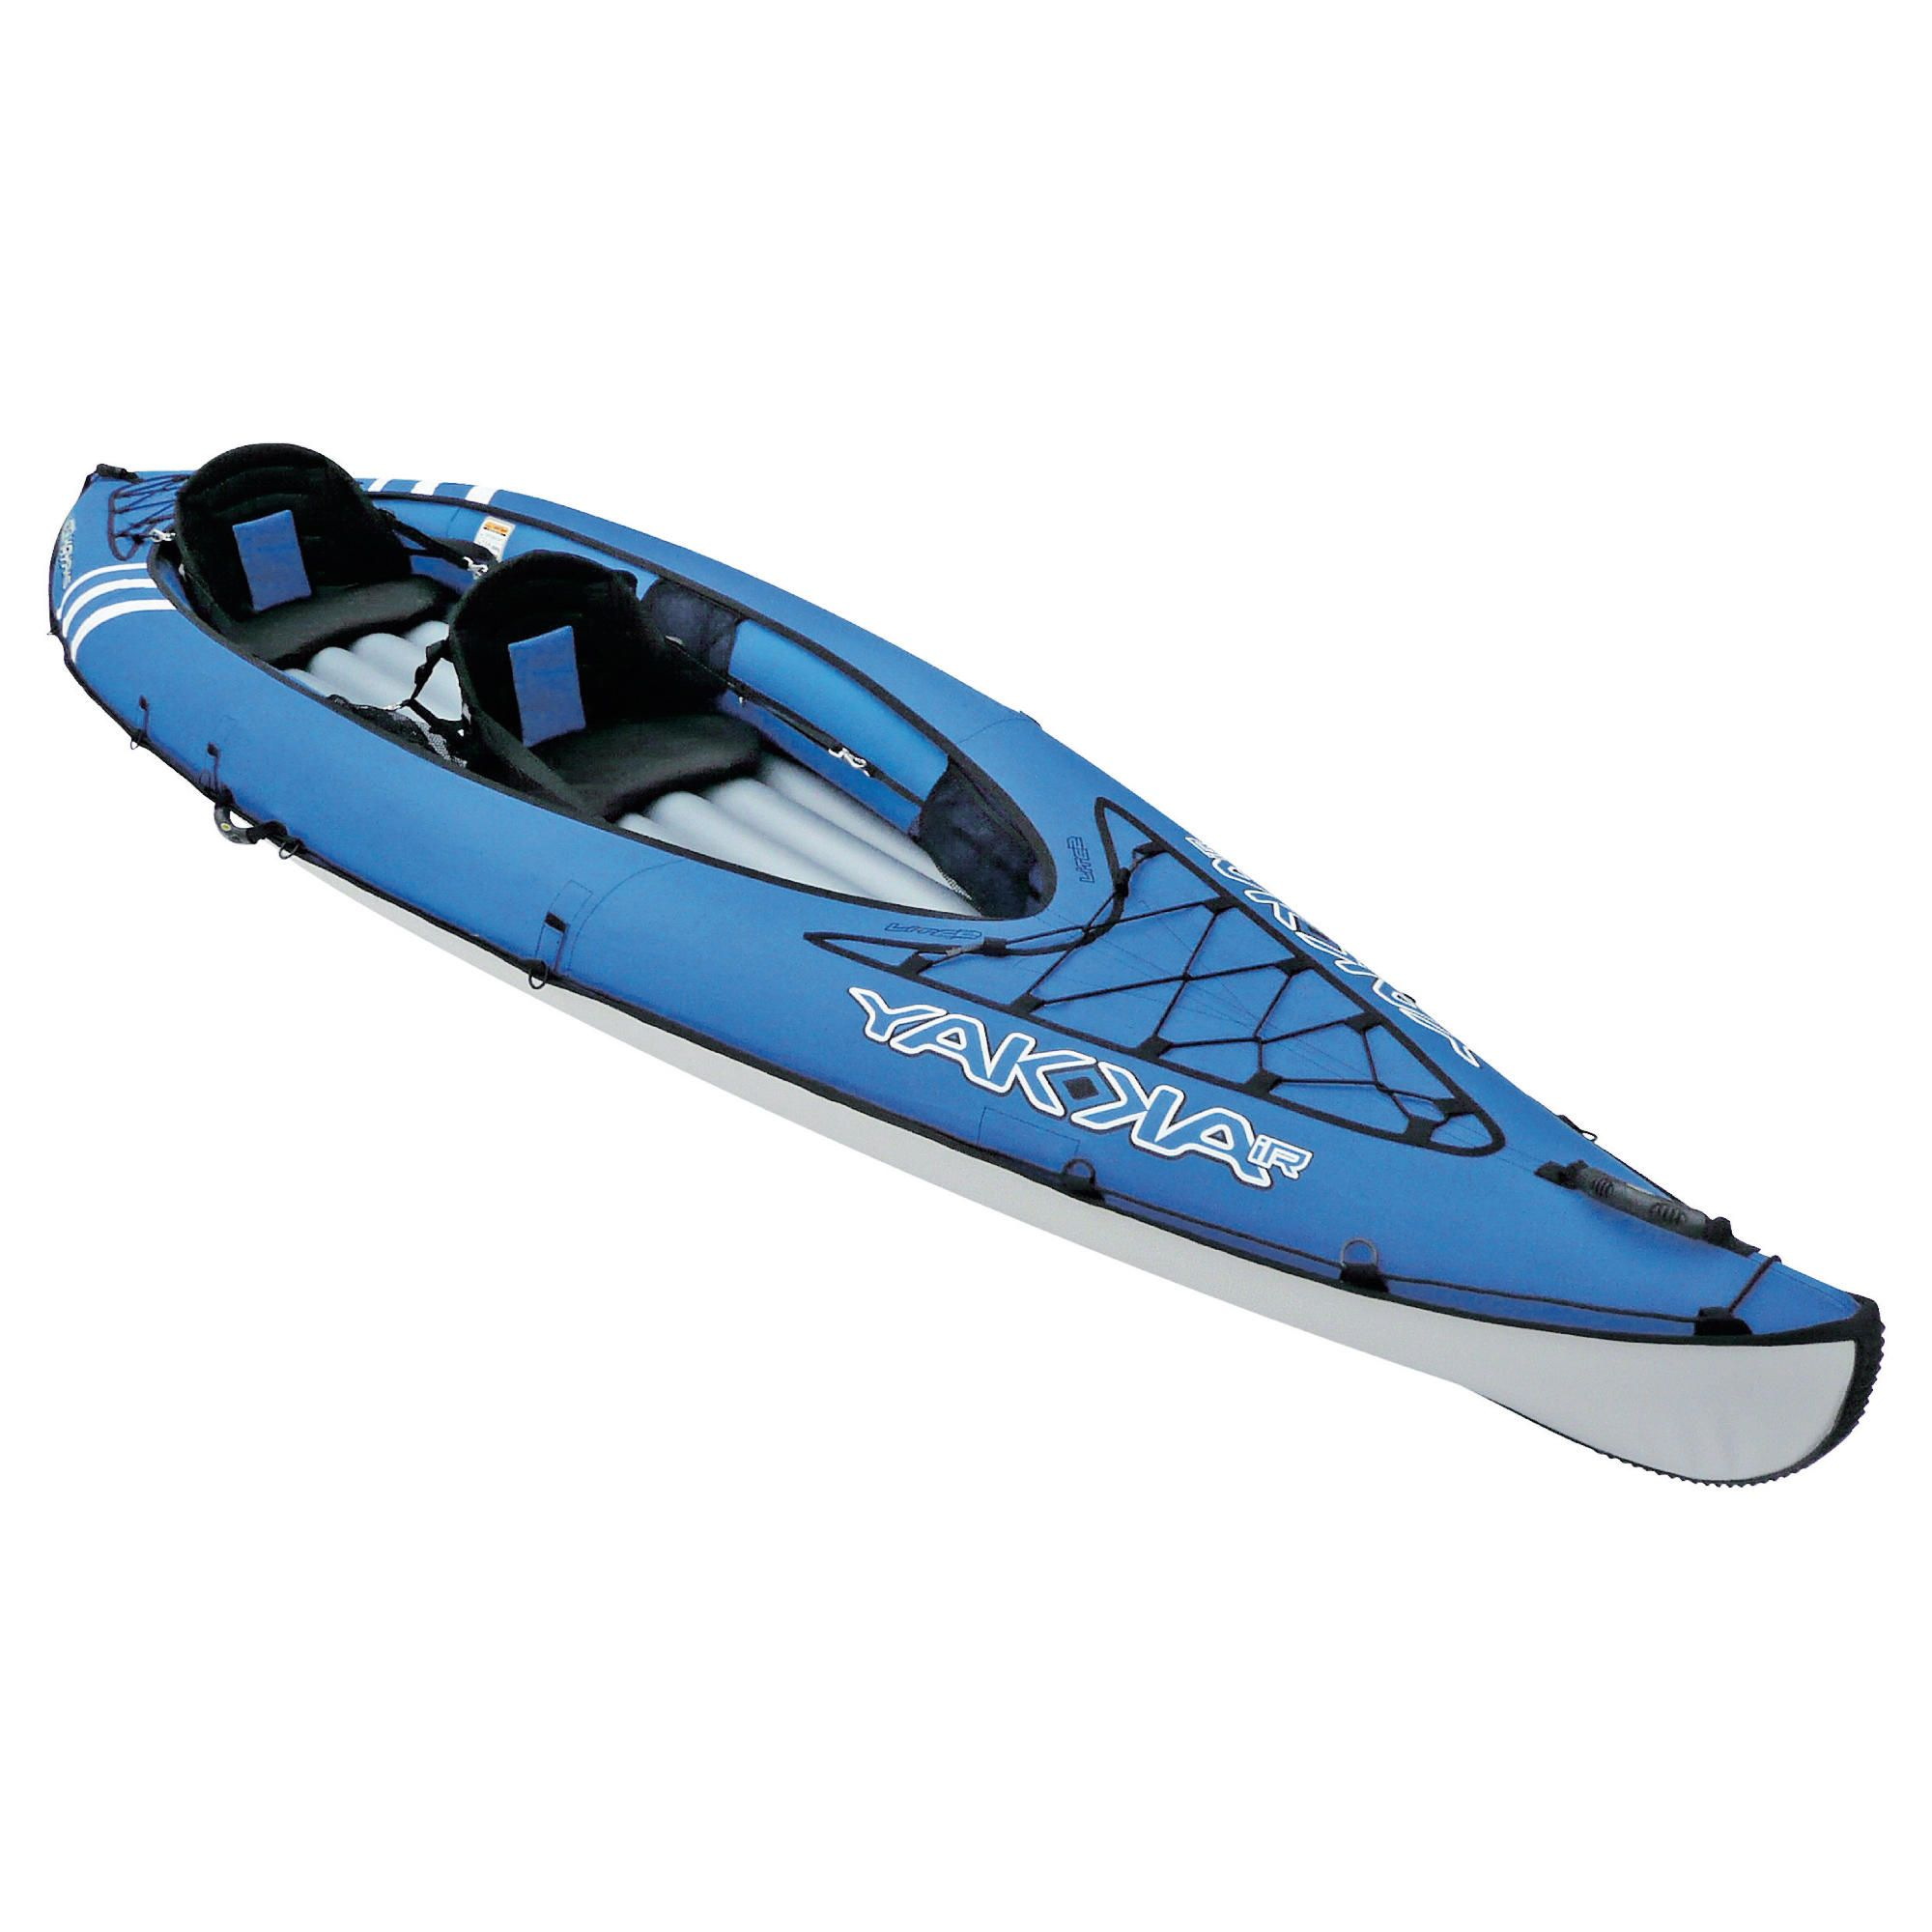 Bic Yakkair Lite 2 Man Inflatable Kayak Package at Tesco Direct